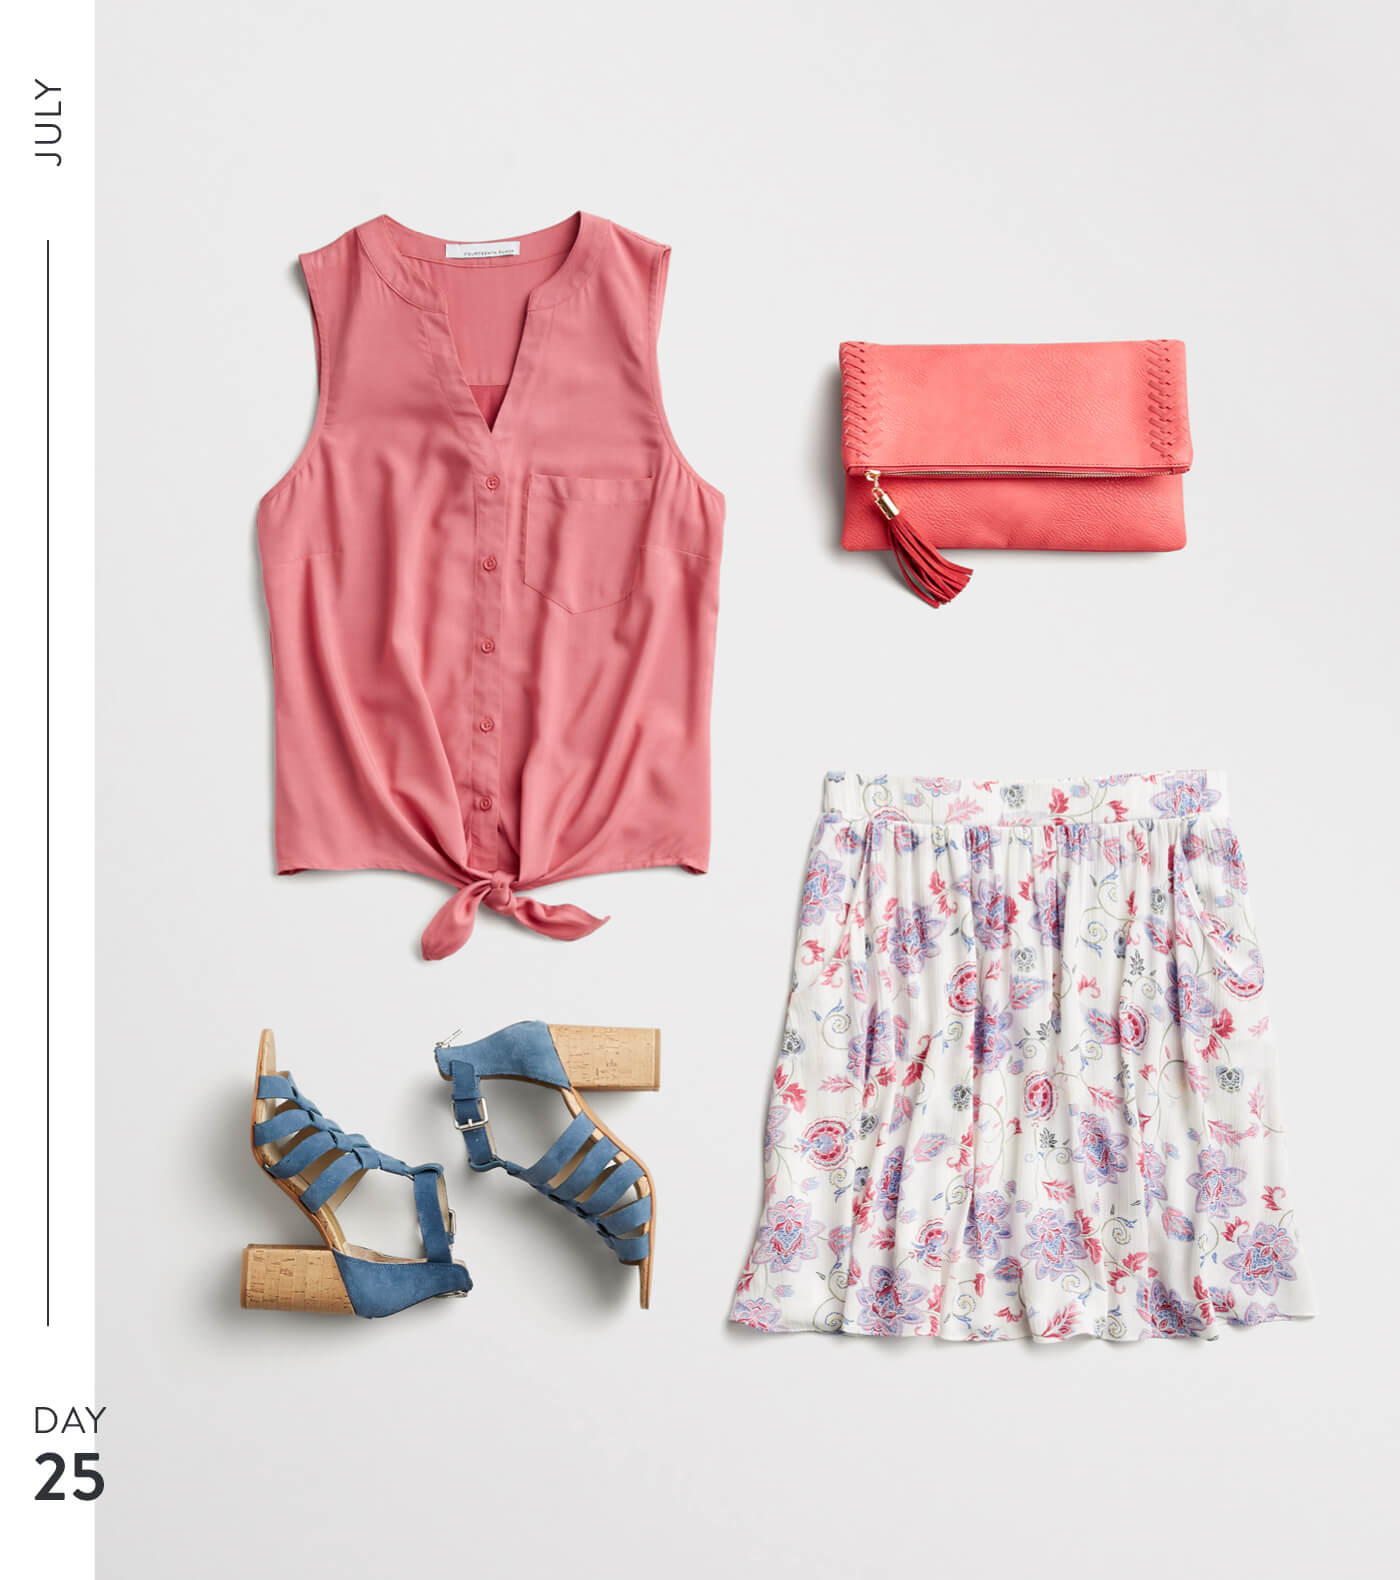 T3_W19_BLG_July-Month-of-Outfits-_357260432_25